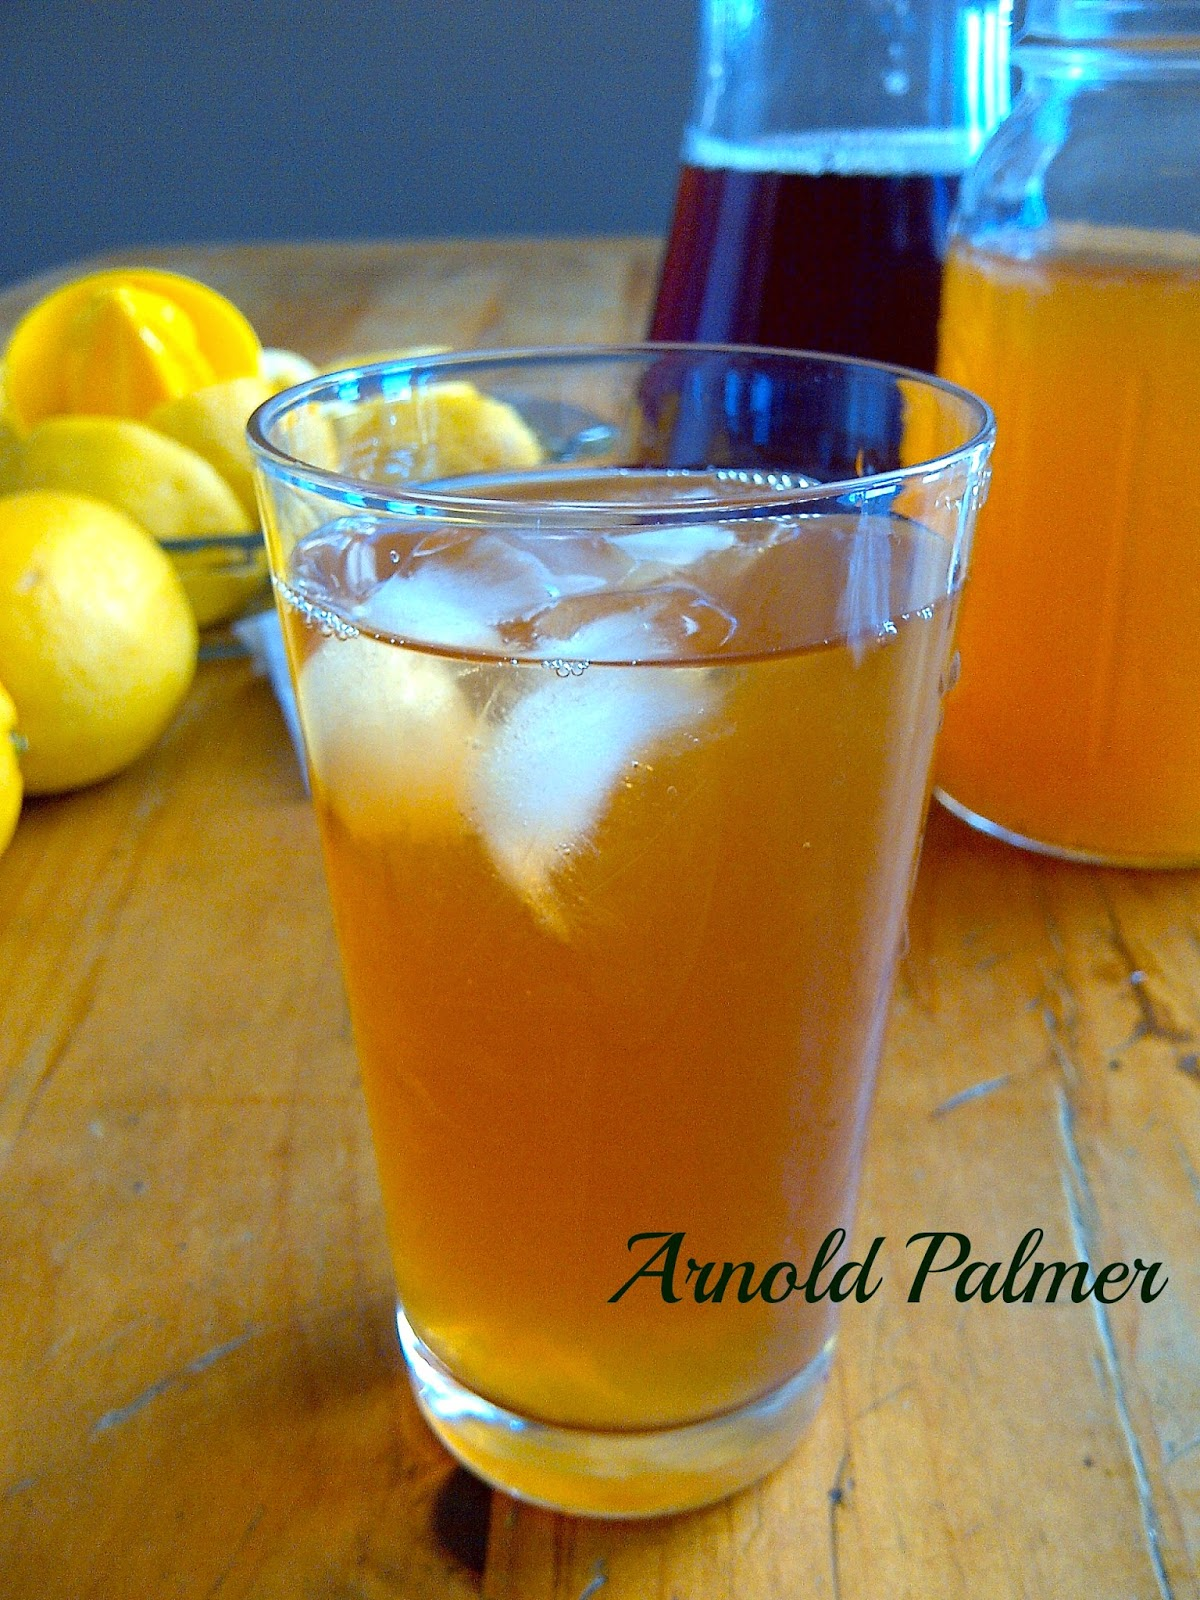 Arnold Palmer - half ice tea, half lemonade - delicious as a whole!